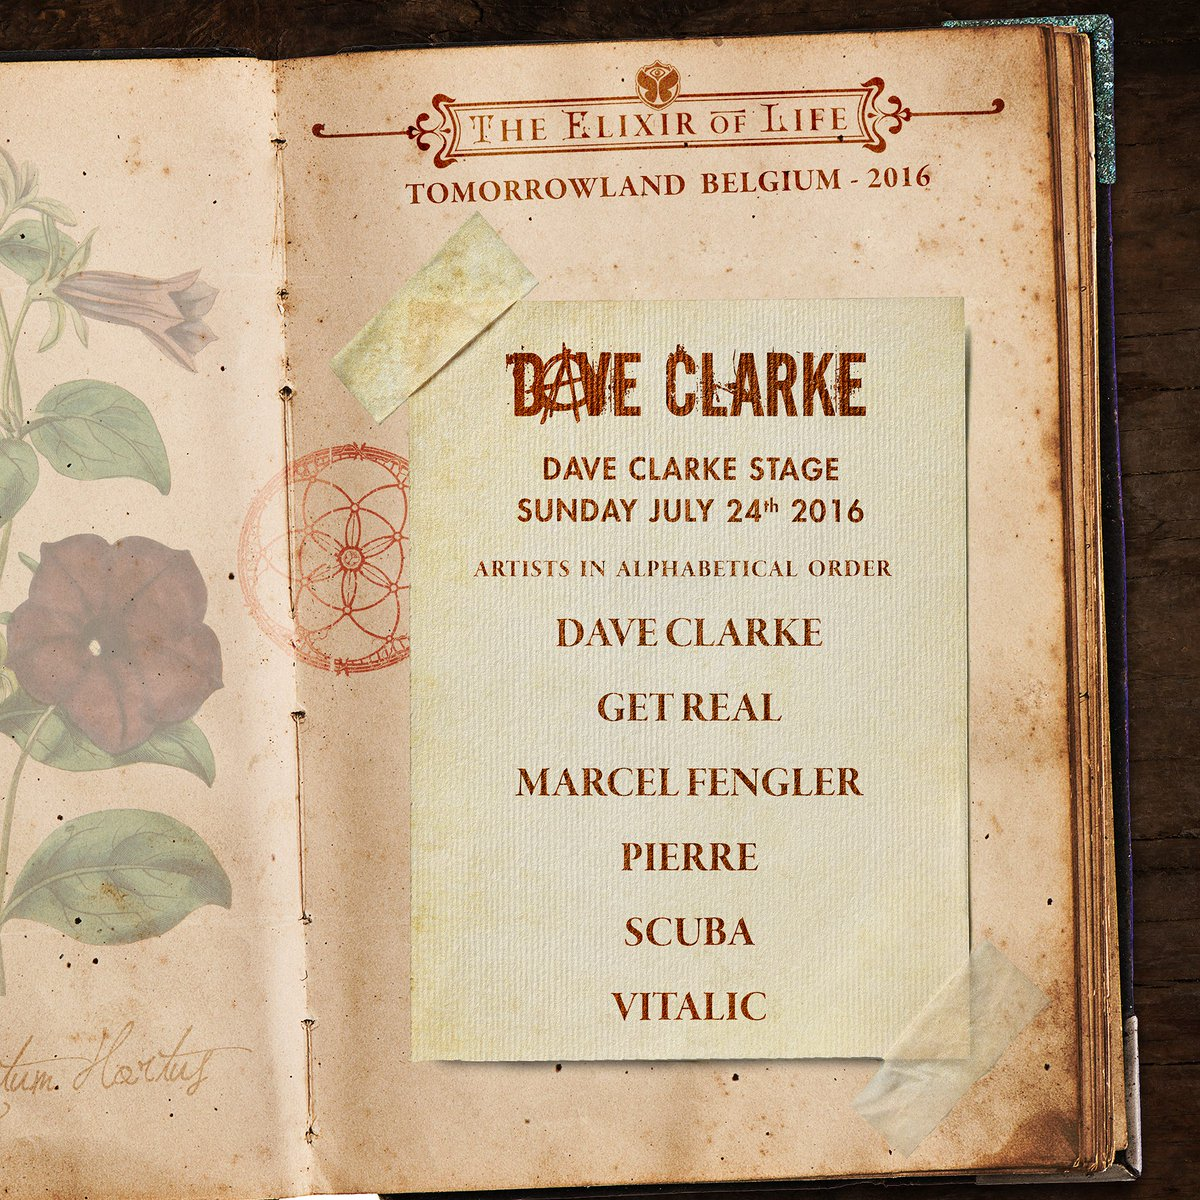 Back at @tomorrowland  Sunday 24th of July https://t.co/tFlCzf6EUh